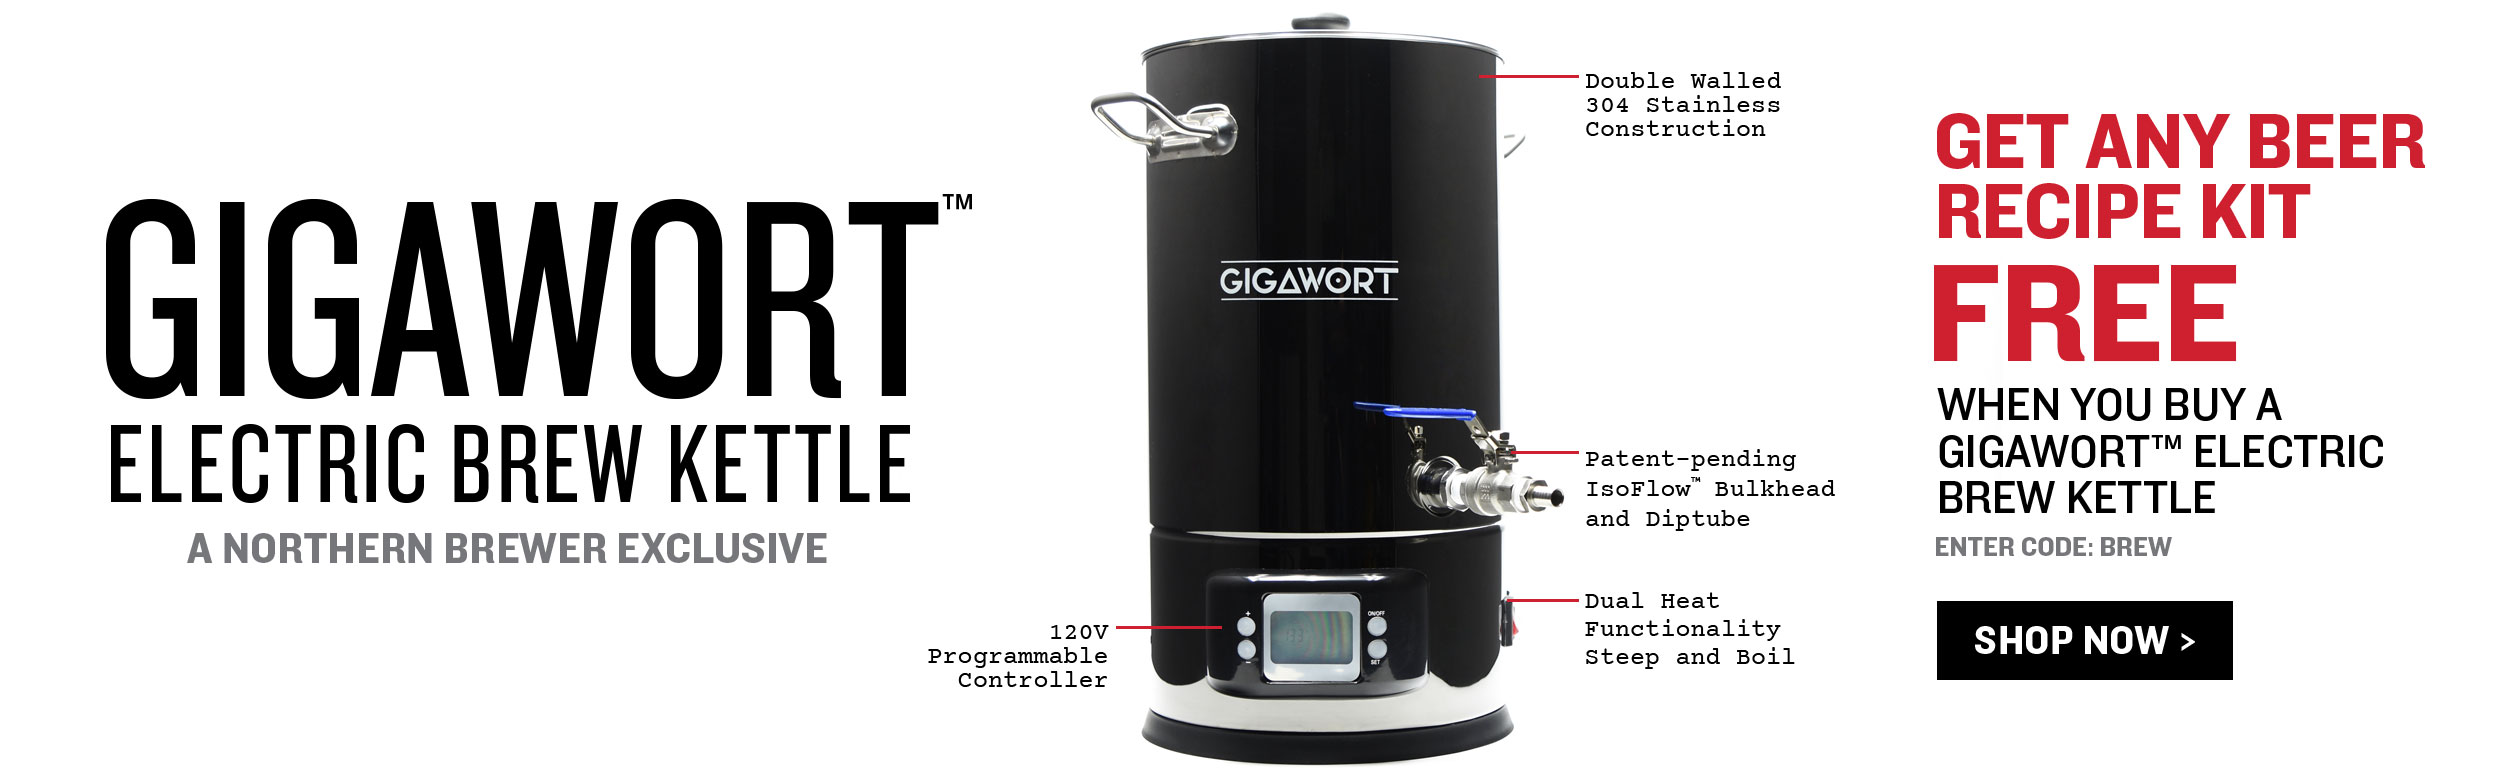 Buy a Gigawort, Get Any Beer Recipe Kit Free!